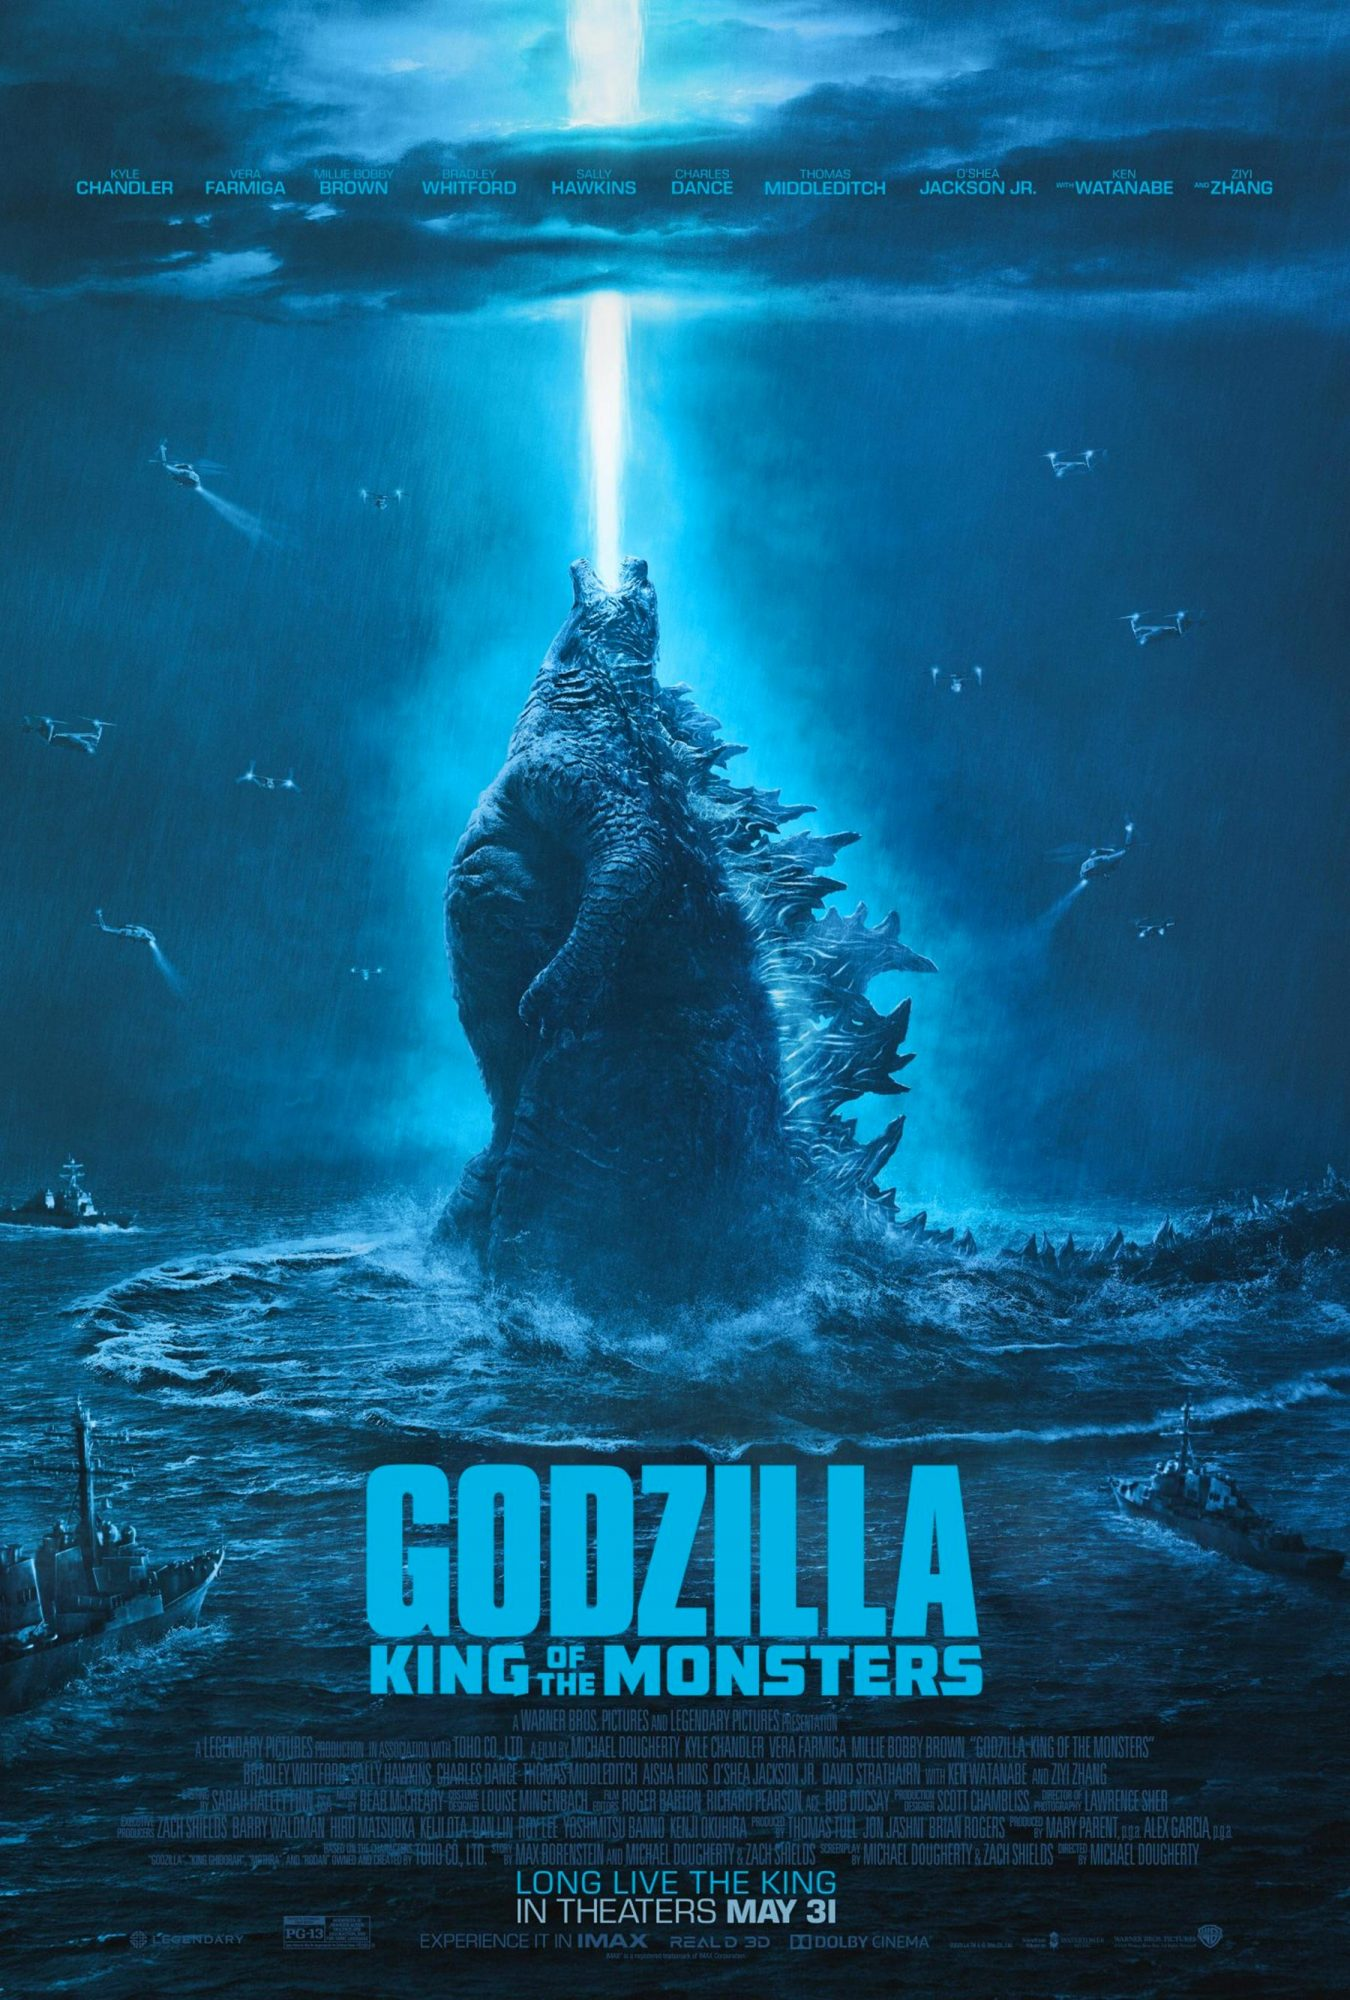 Godzilla: King of the Monsters movie poster CR: Warner Bros. Pictures https://twitter.com/GodzillaMovie/status/1118907146811265025